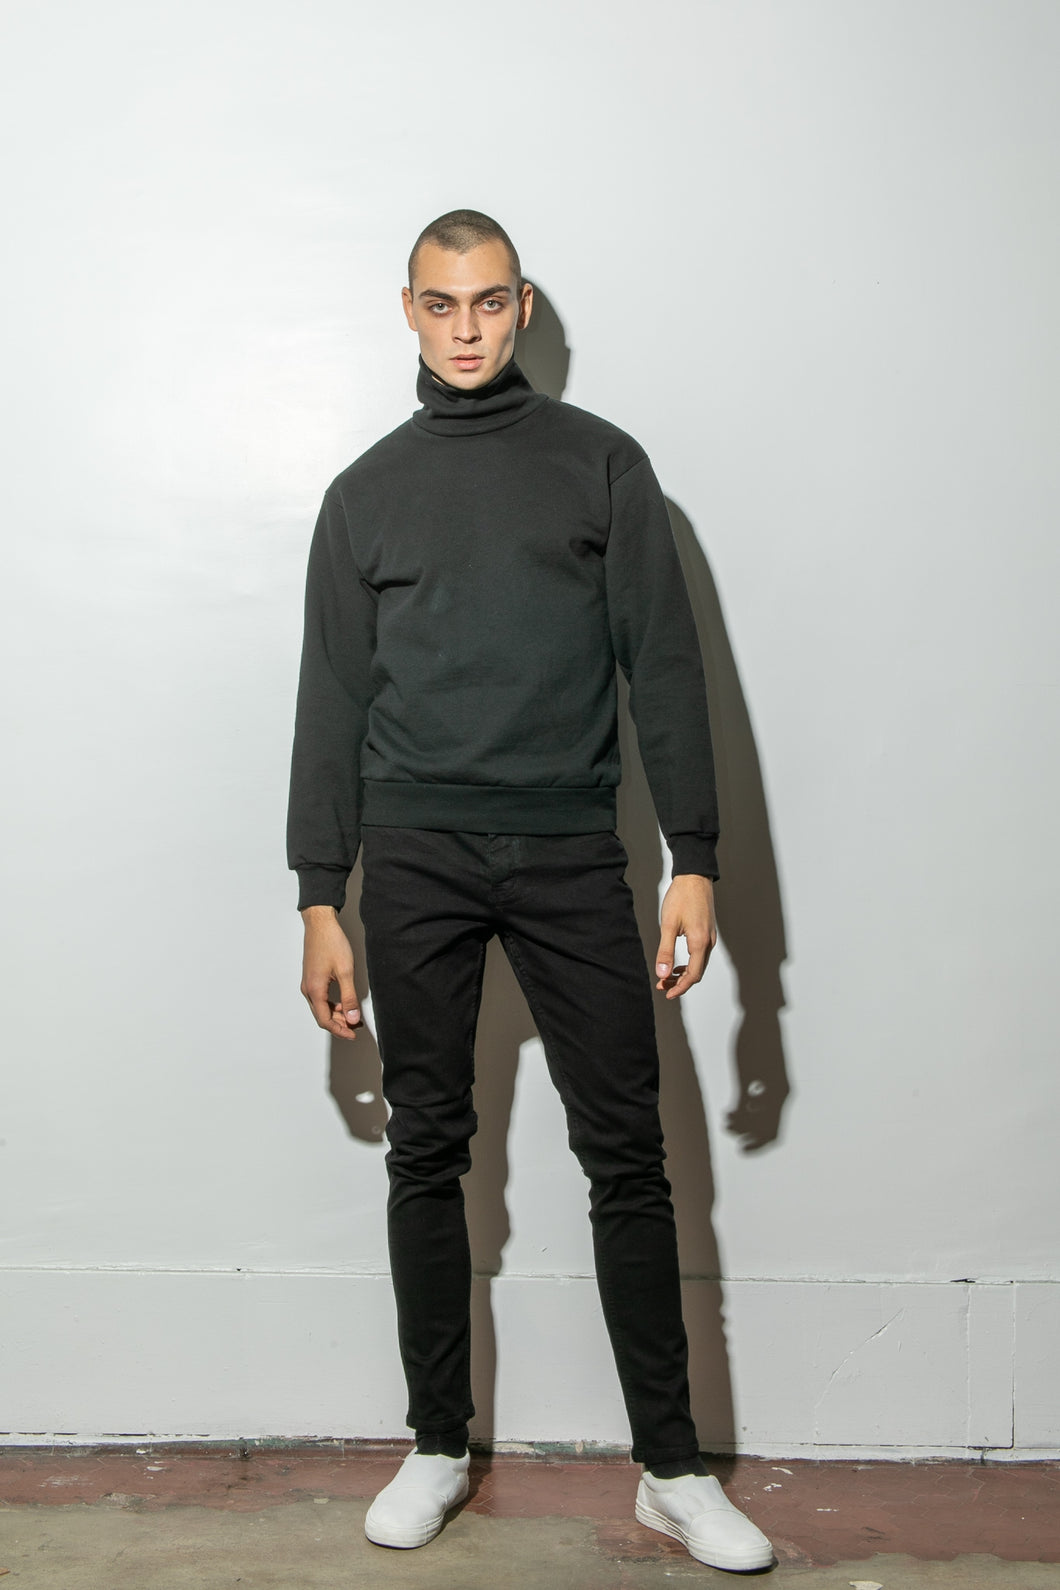 Oak Standard Turtleneck Sweatshirt